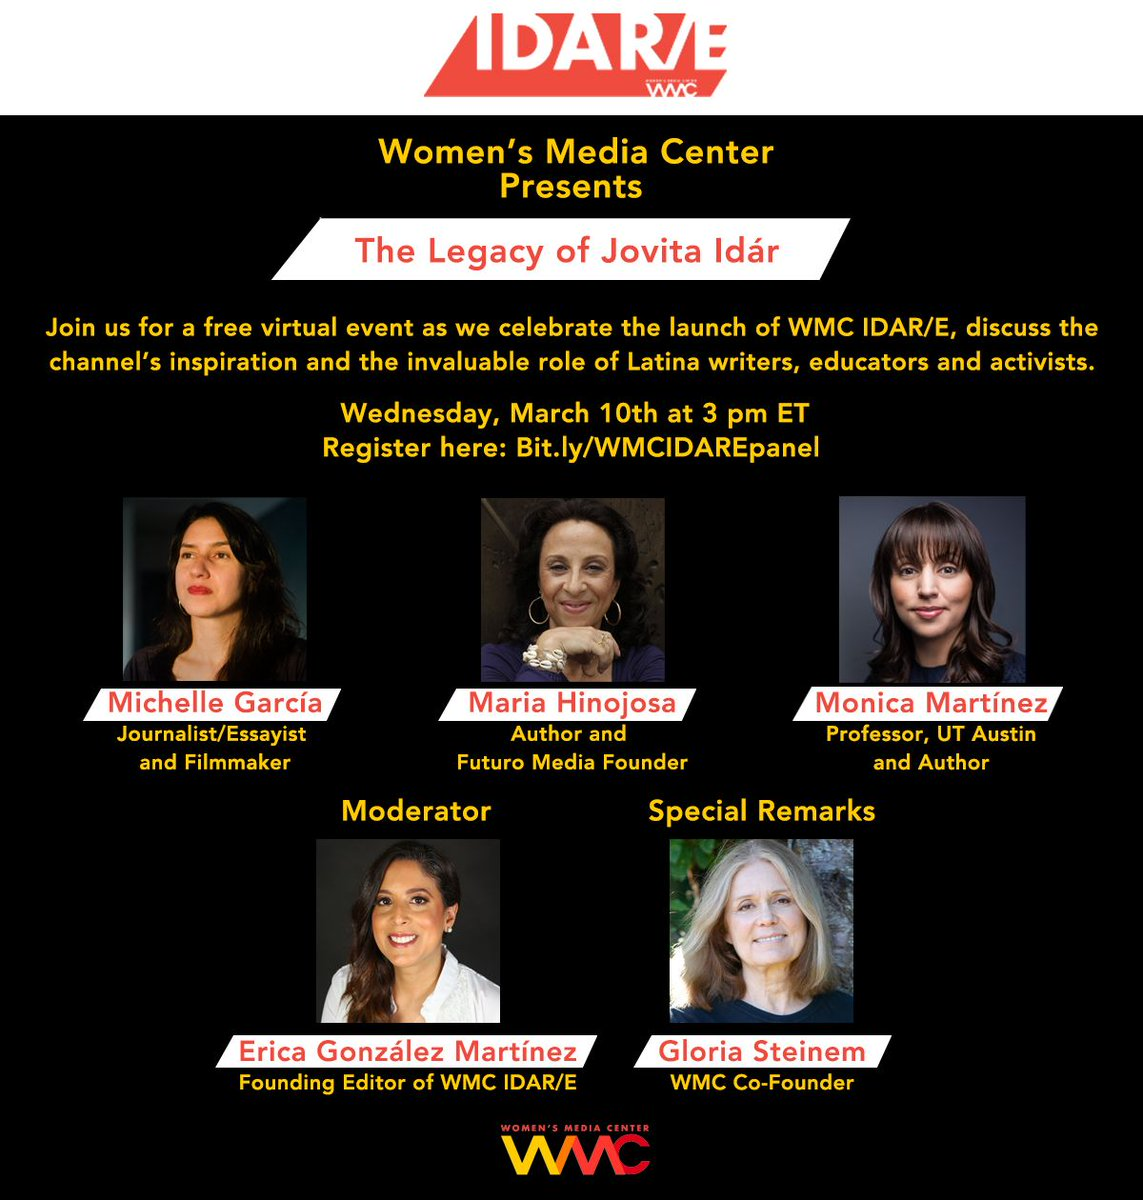 Join us in celebrating the launch of our new channel WMC IDAR/E, the inspiration behind it, and the invaluable role that Latina writers, educators and activists have and continue to play. Mark your calendars for this (free) event on March 10 at 3pm EST!